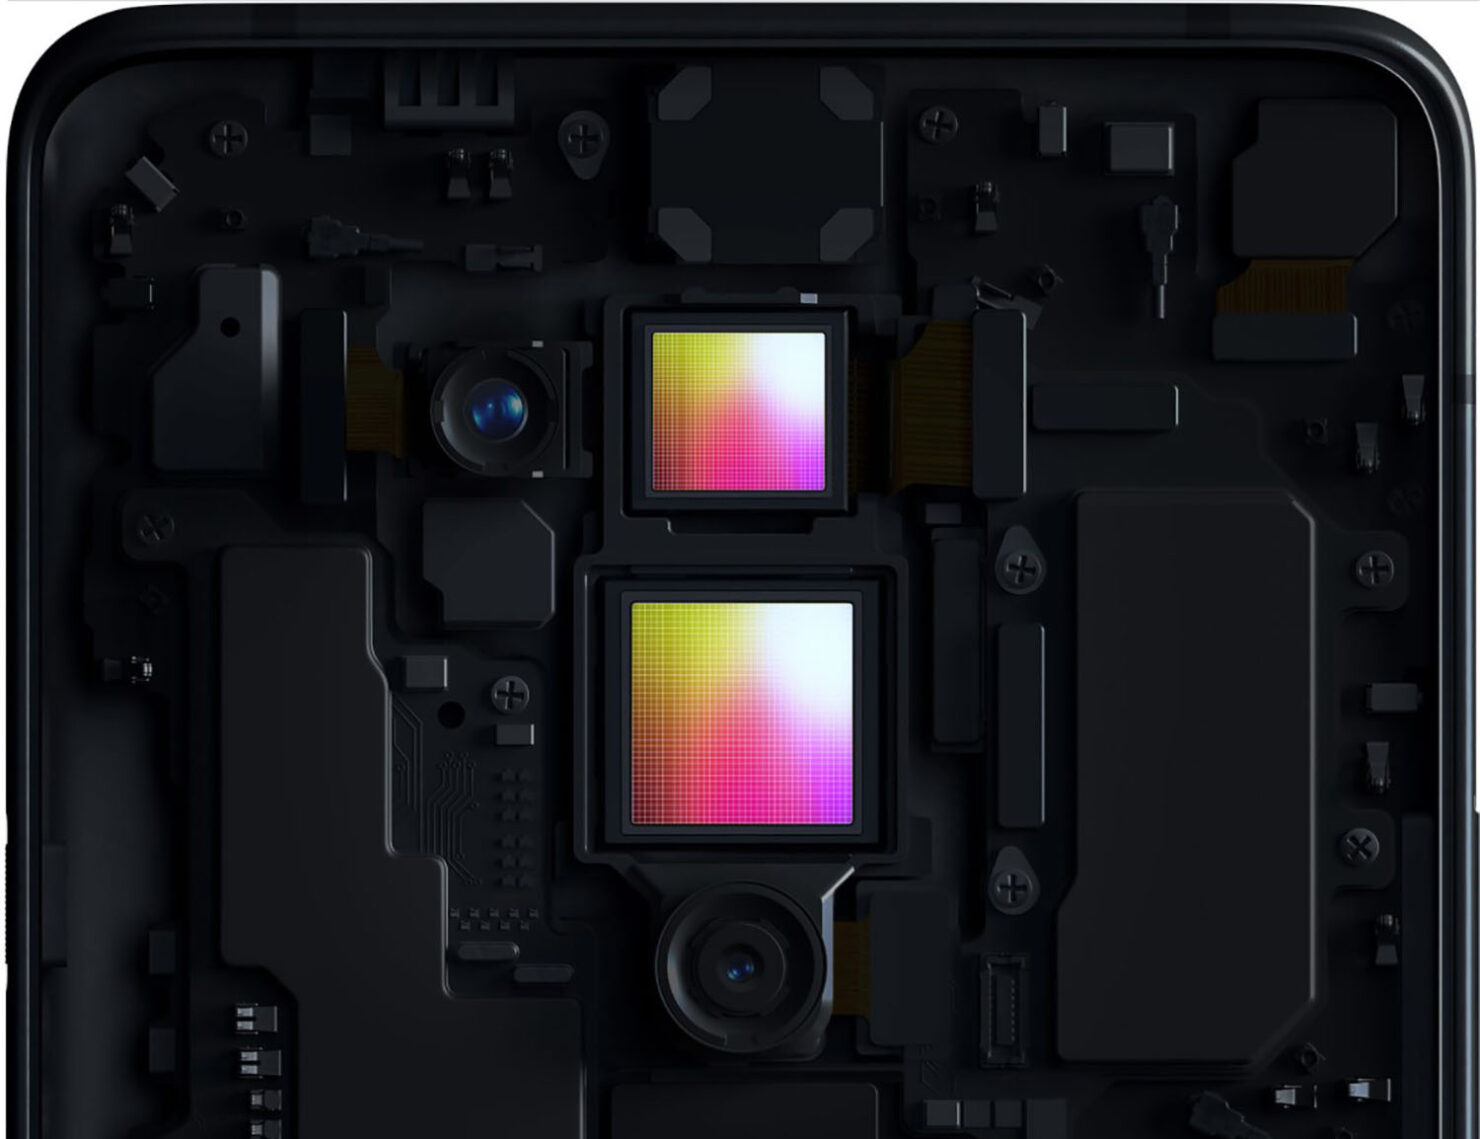 OnePlus May Bring 8K 960FPS Video Recording Option to Future Flagship Smartphones, Suggests Latest Leak